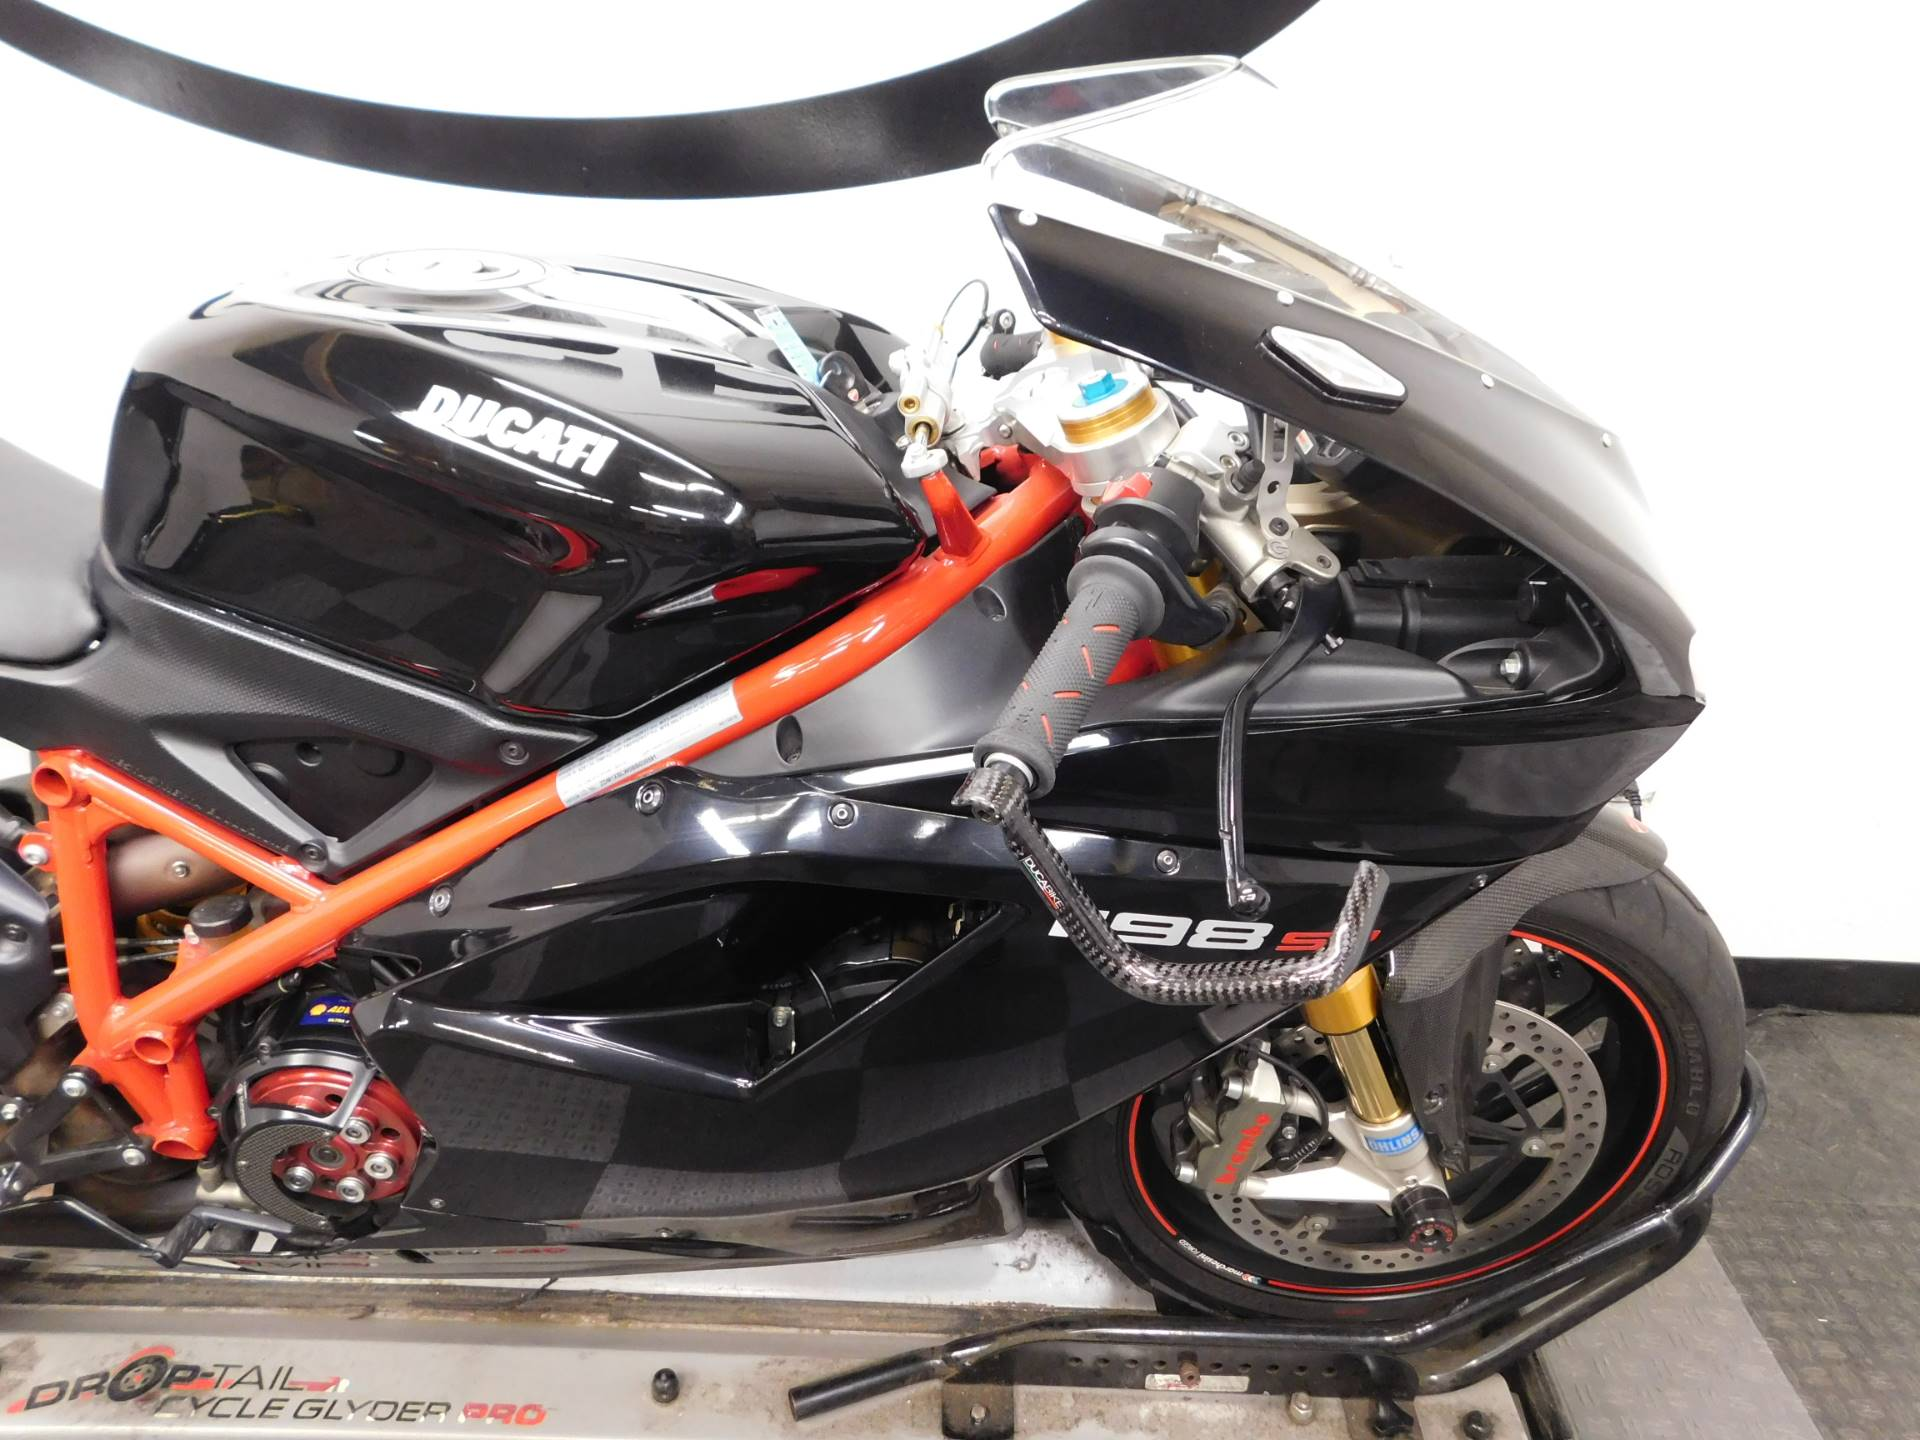 2011 Ducati Superbike 1198 SP in Eden Prairie, Minnesota